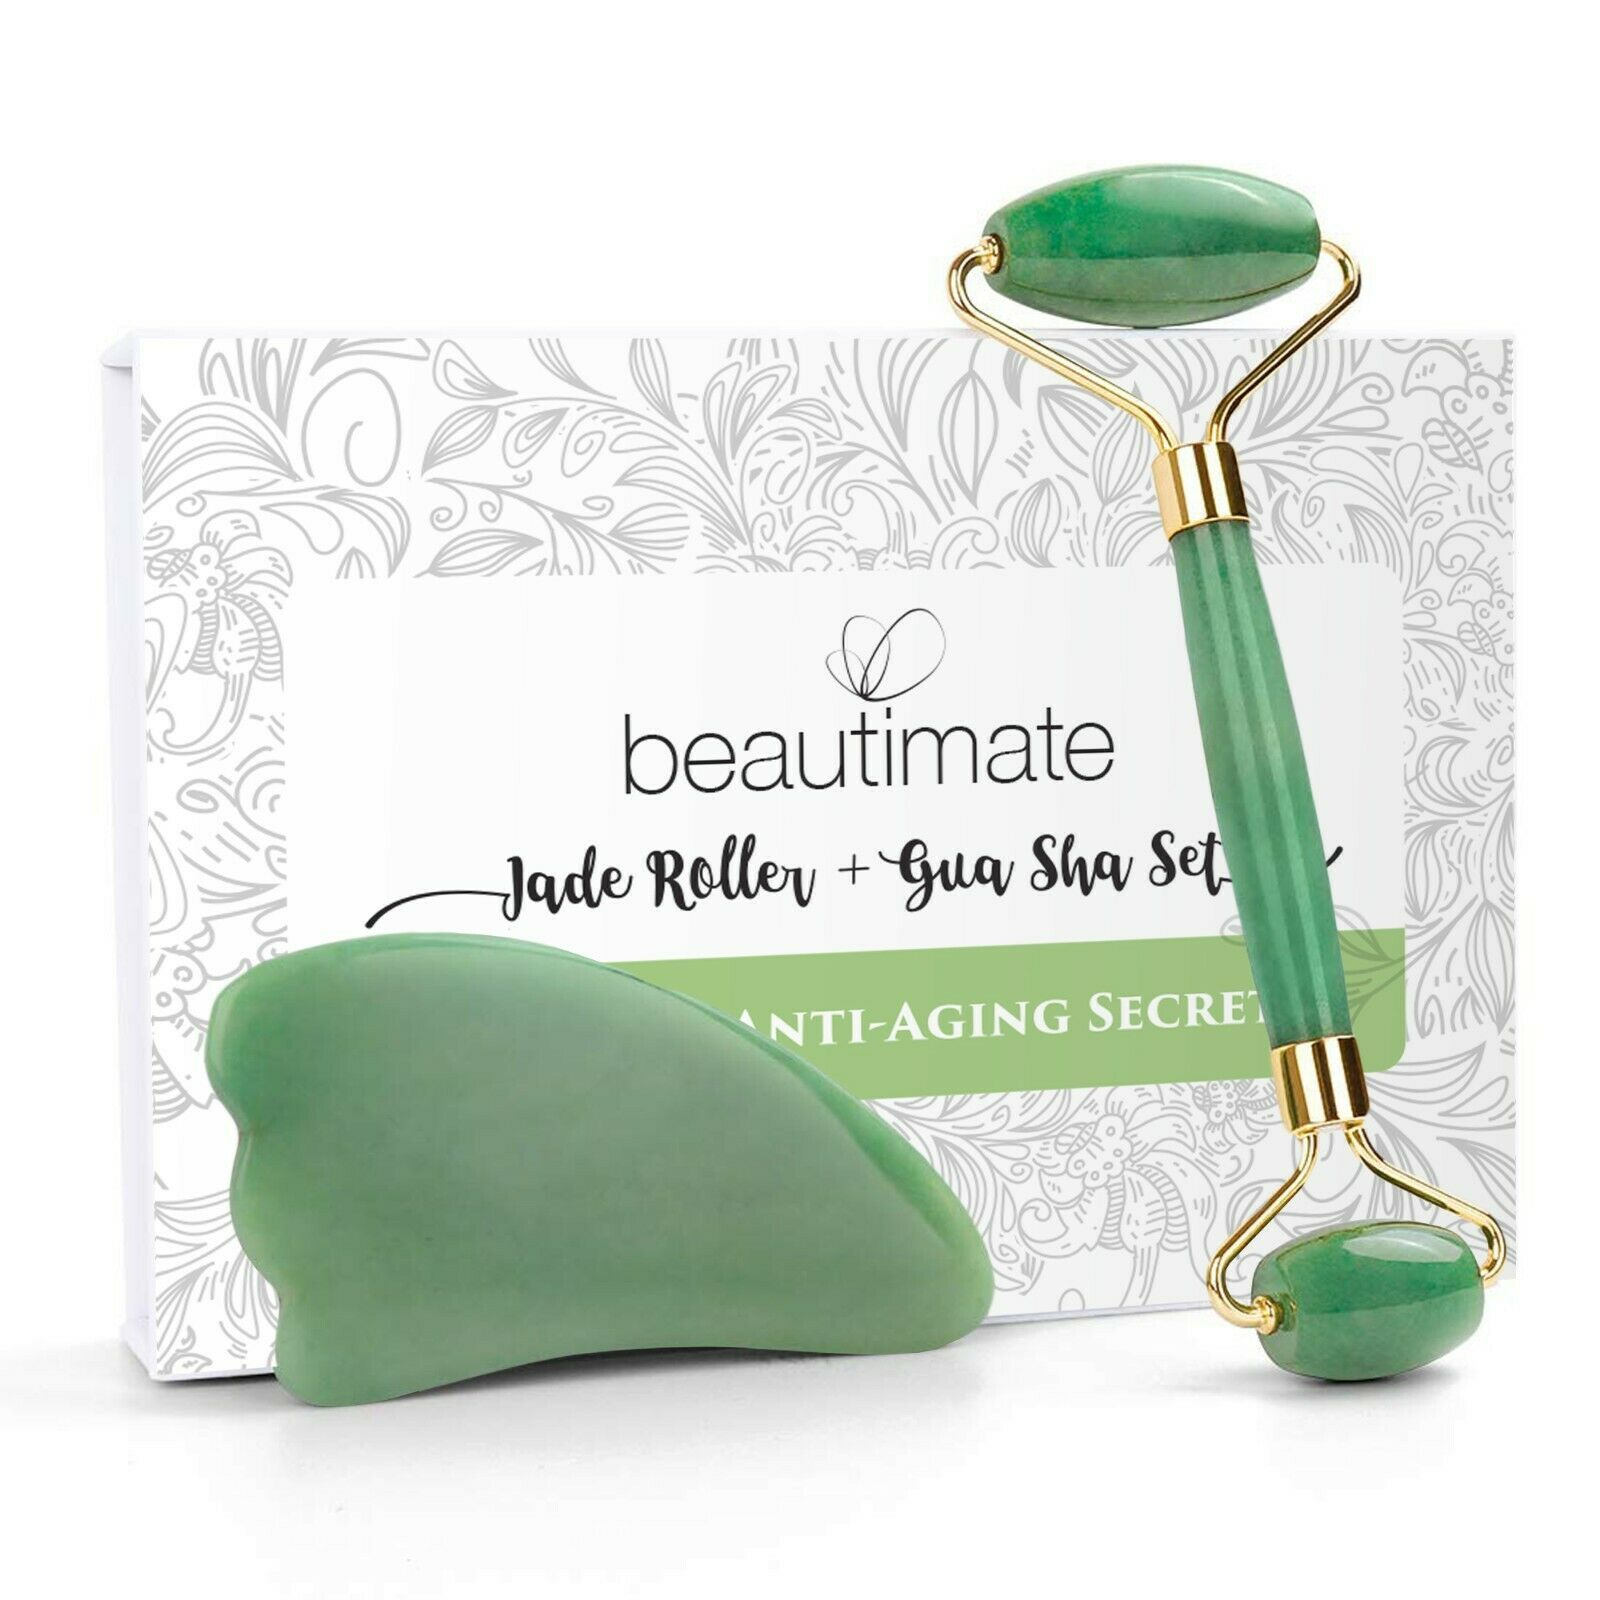 Jade Roller for Face & Gua Sha Scraping Massage Tool Anti Aging & Wrinkle Tool